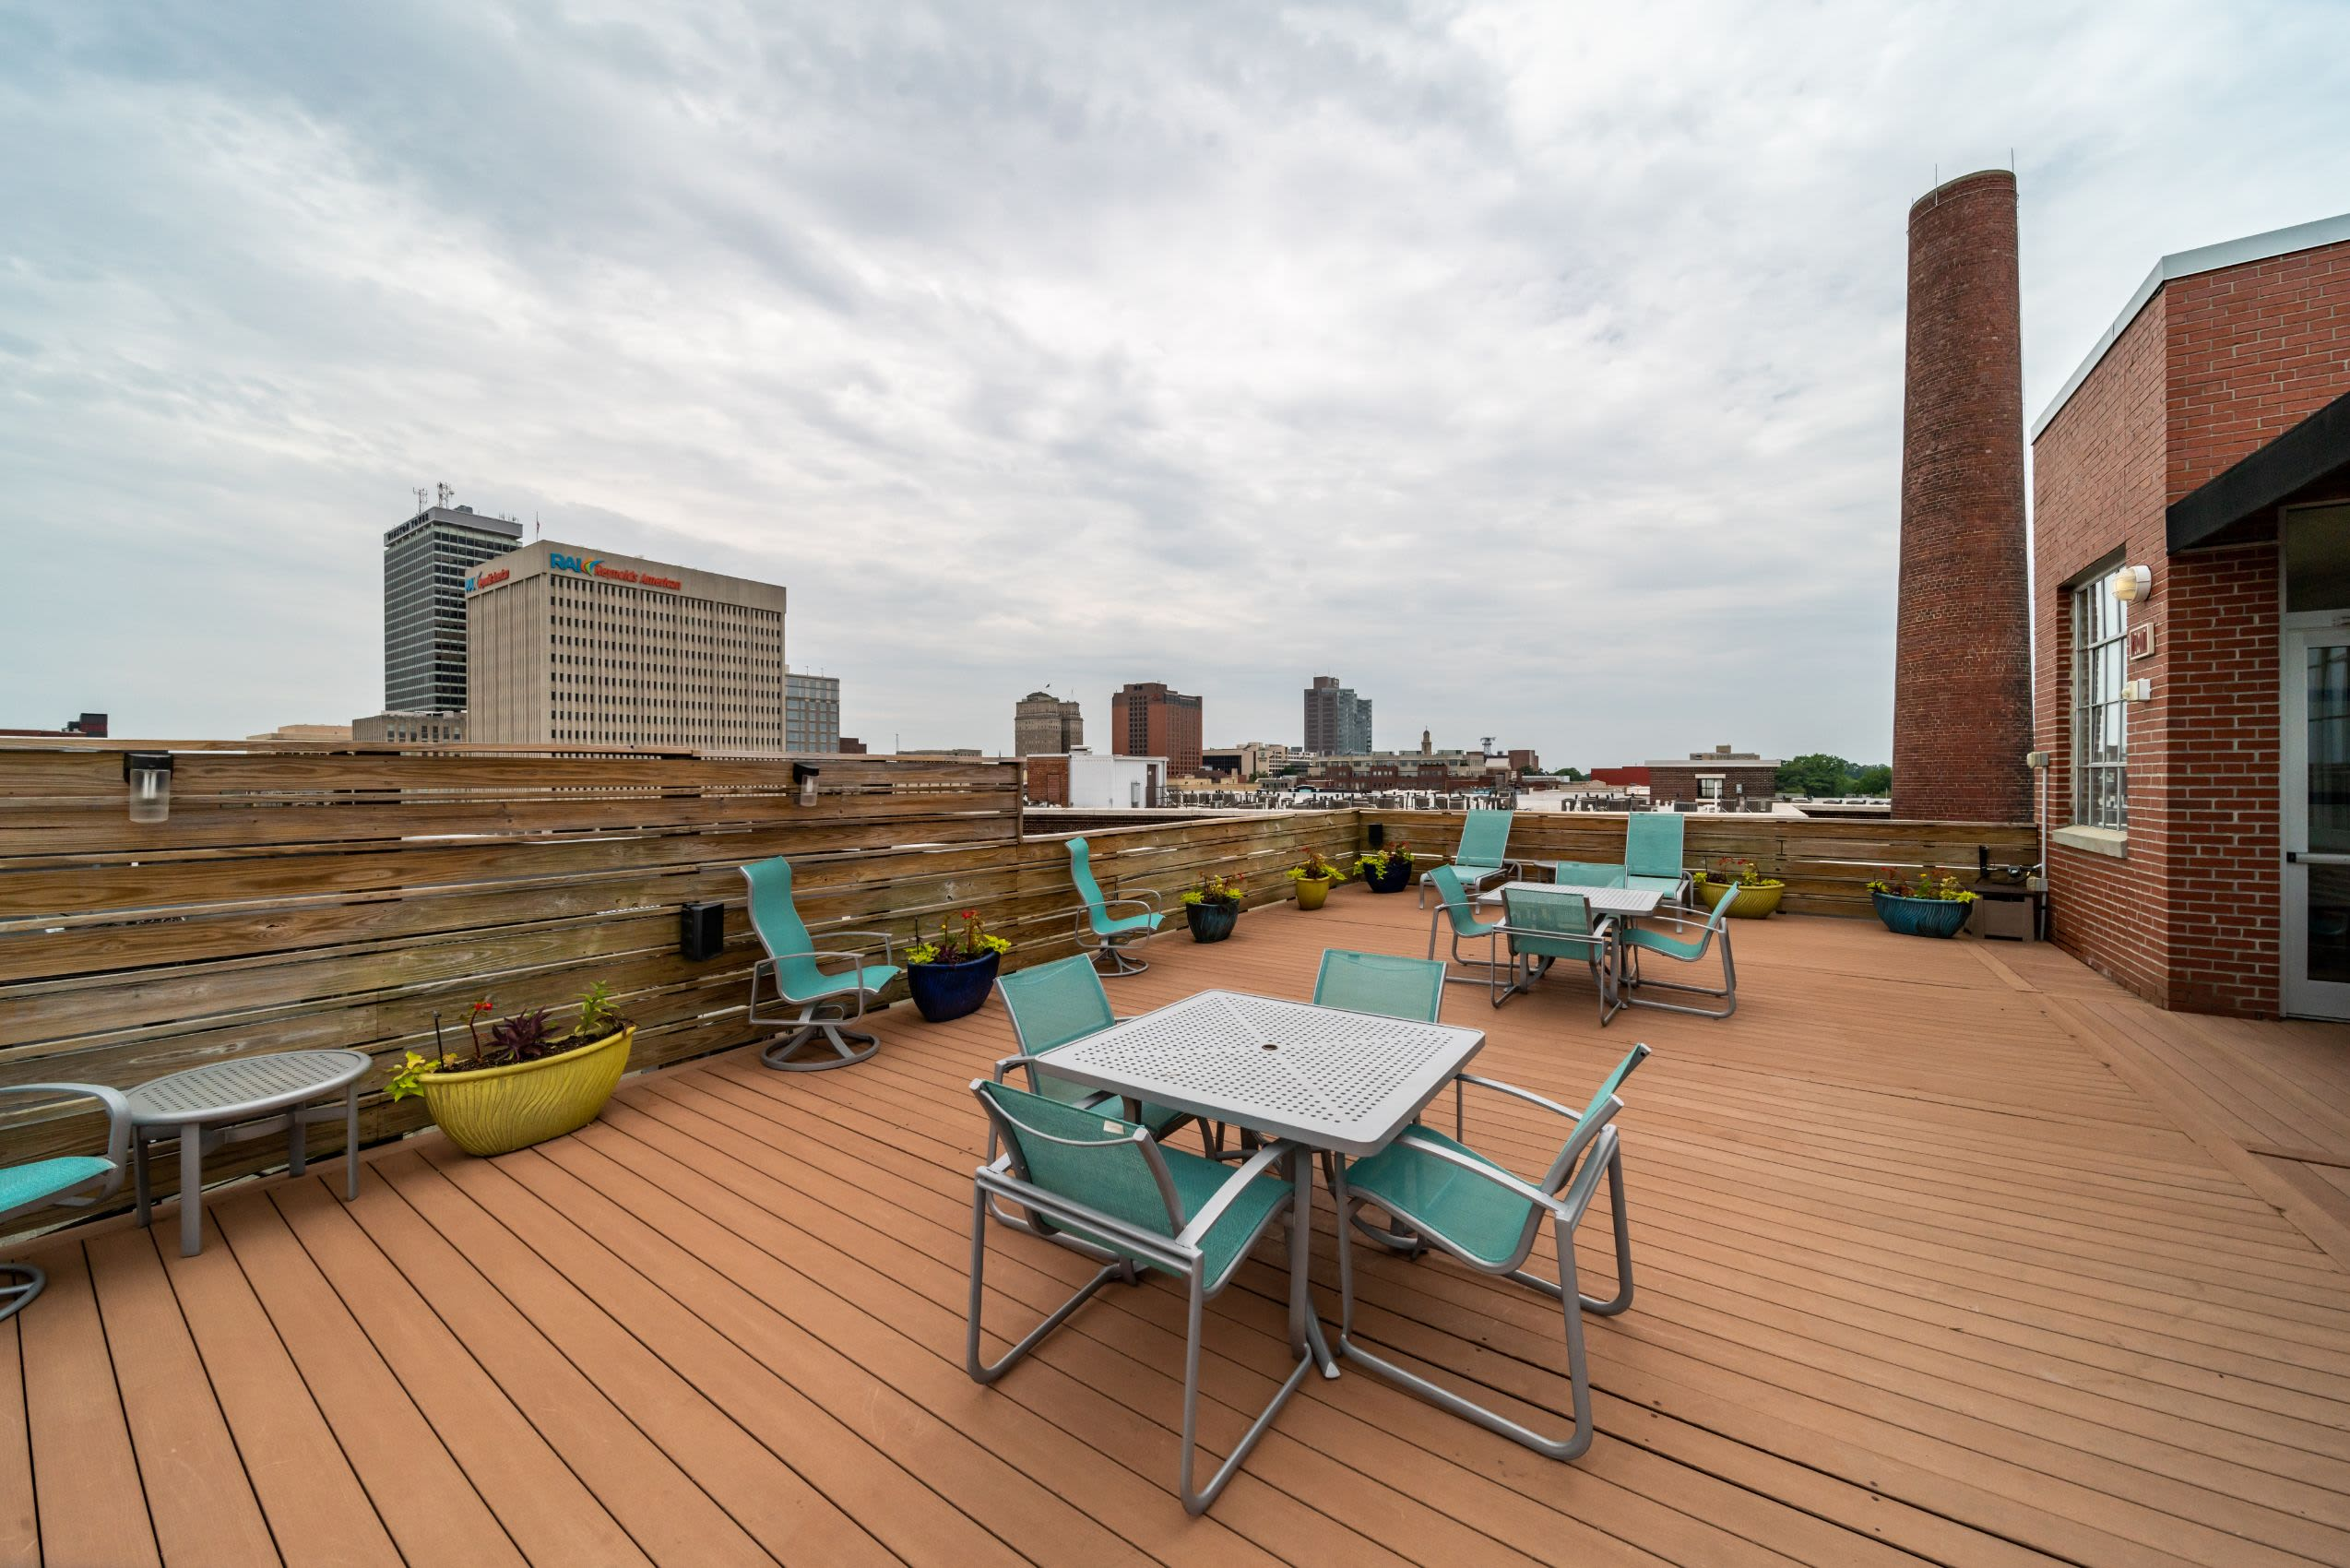 City views from rooftop lounge at The Gallery Lofts in Winston Salem, North Carolina